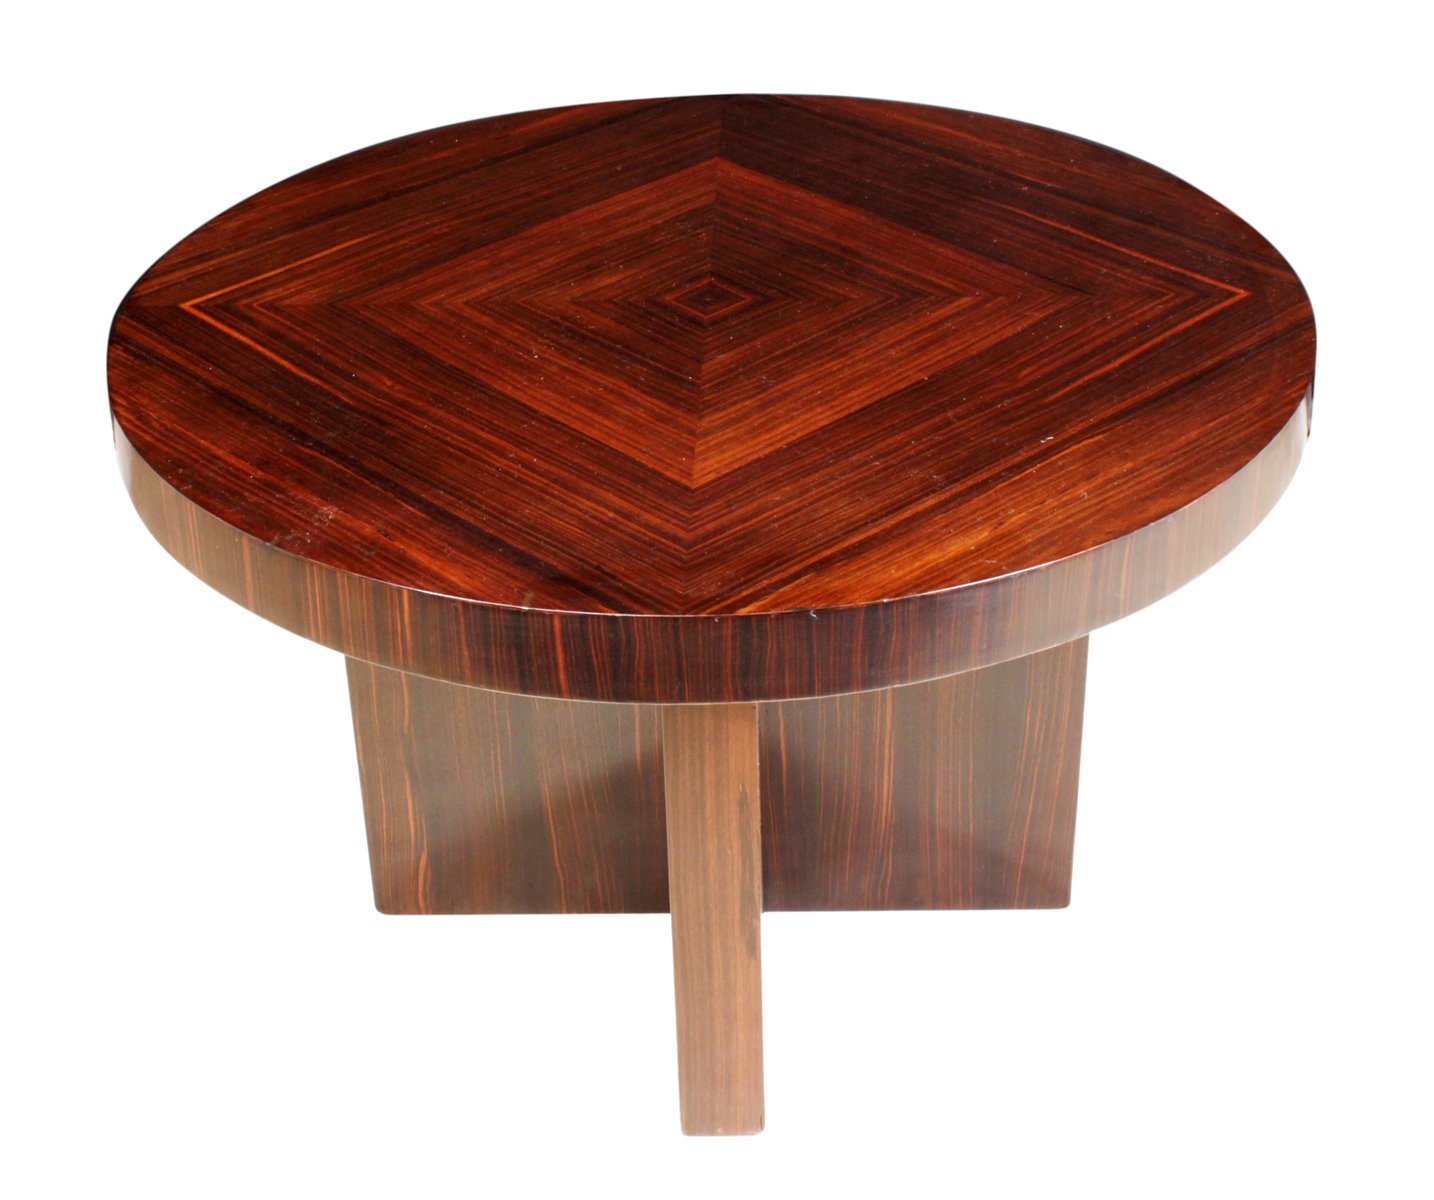 Macassar Ebony Coffee Table, 1930s For Sale At Pamono